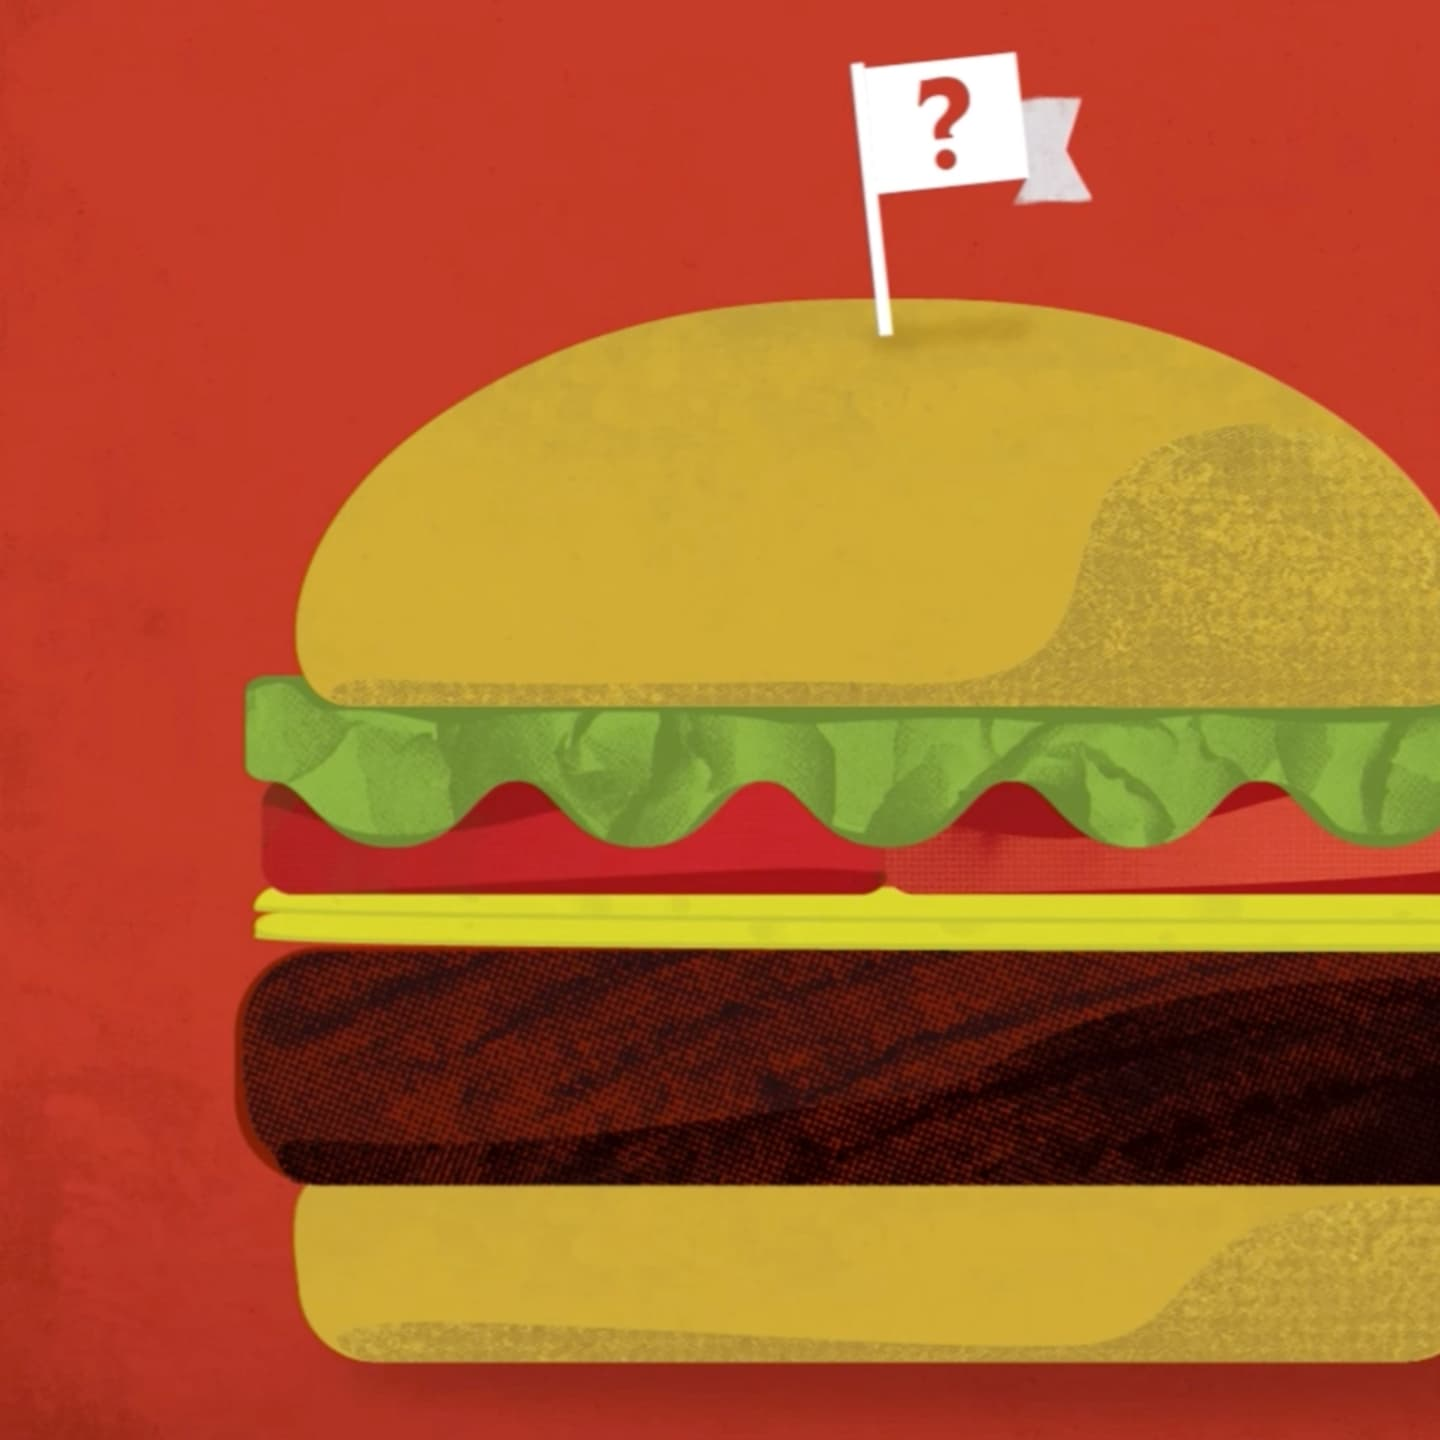 Still image of a hamburger from the Zephyr Foods informational video.